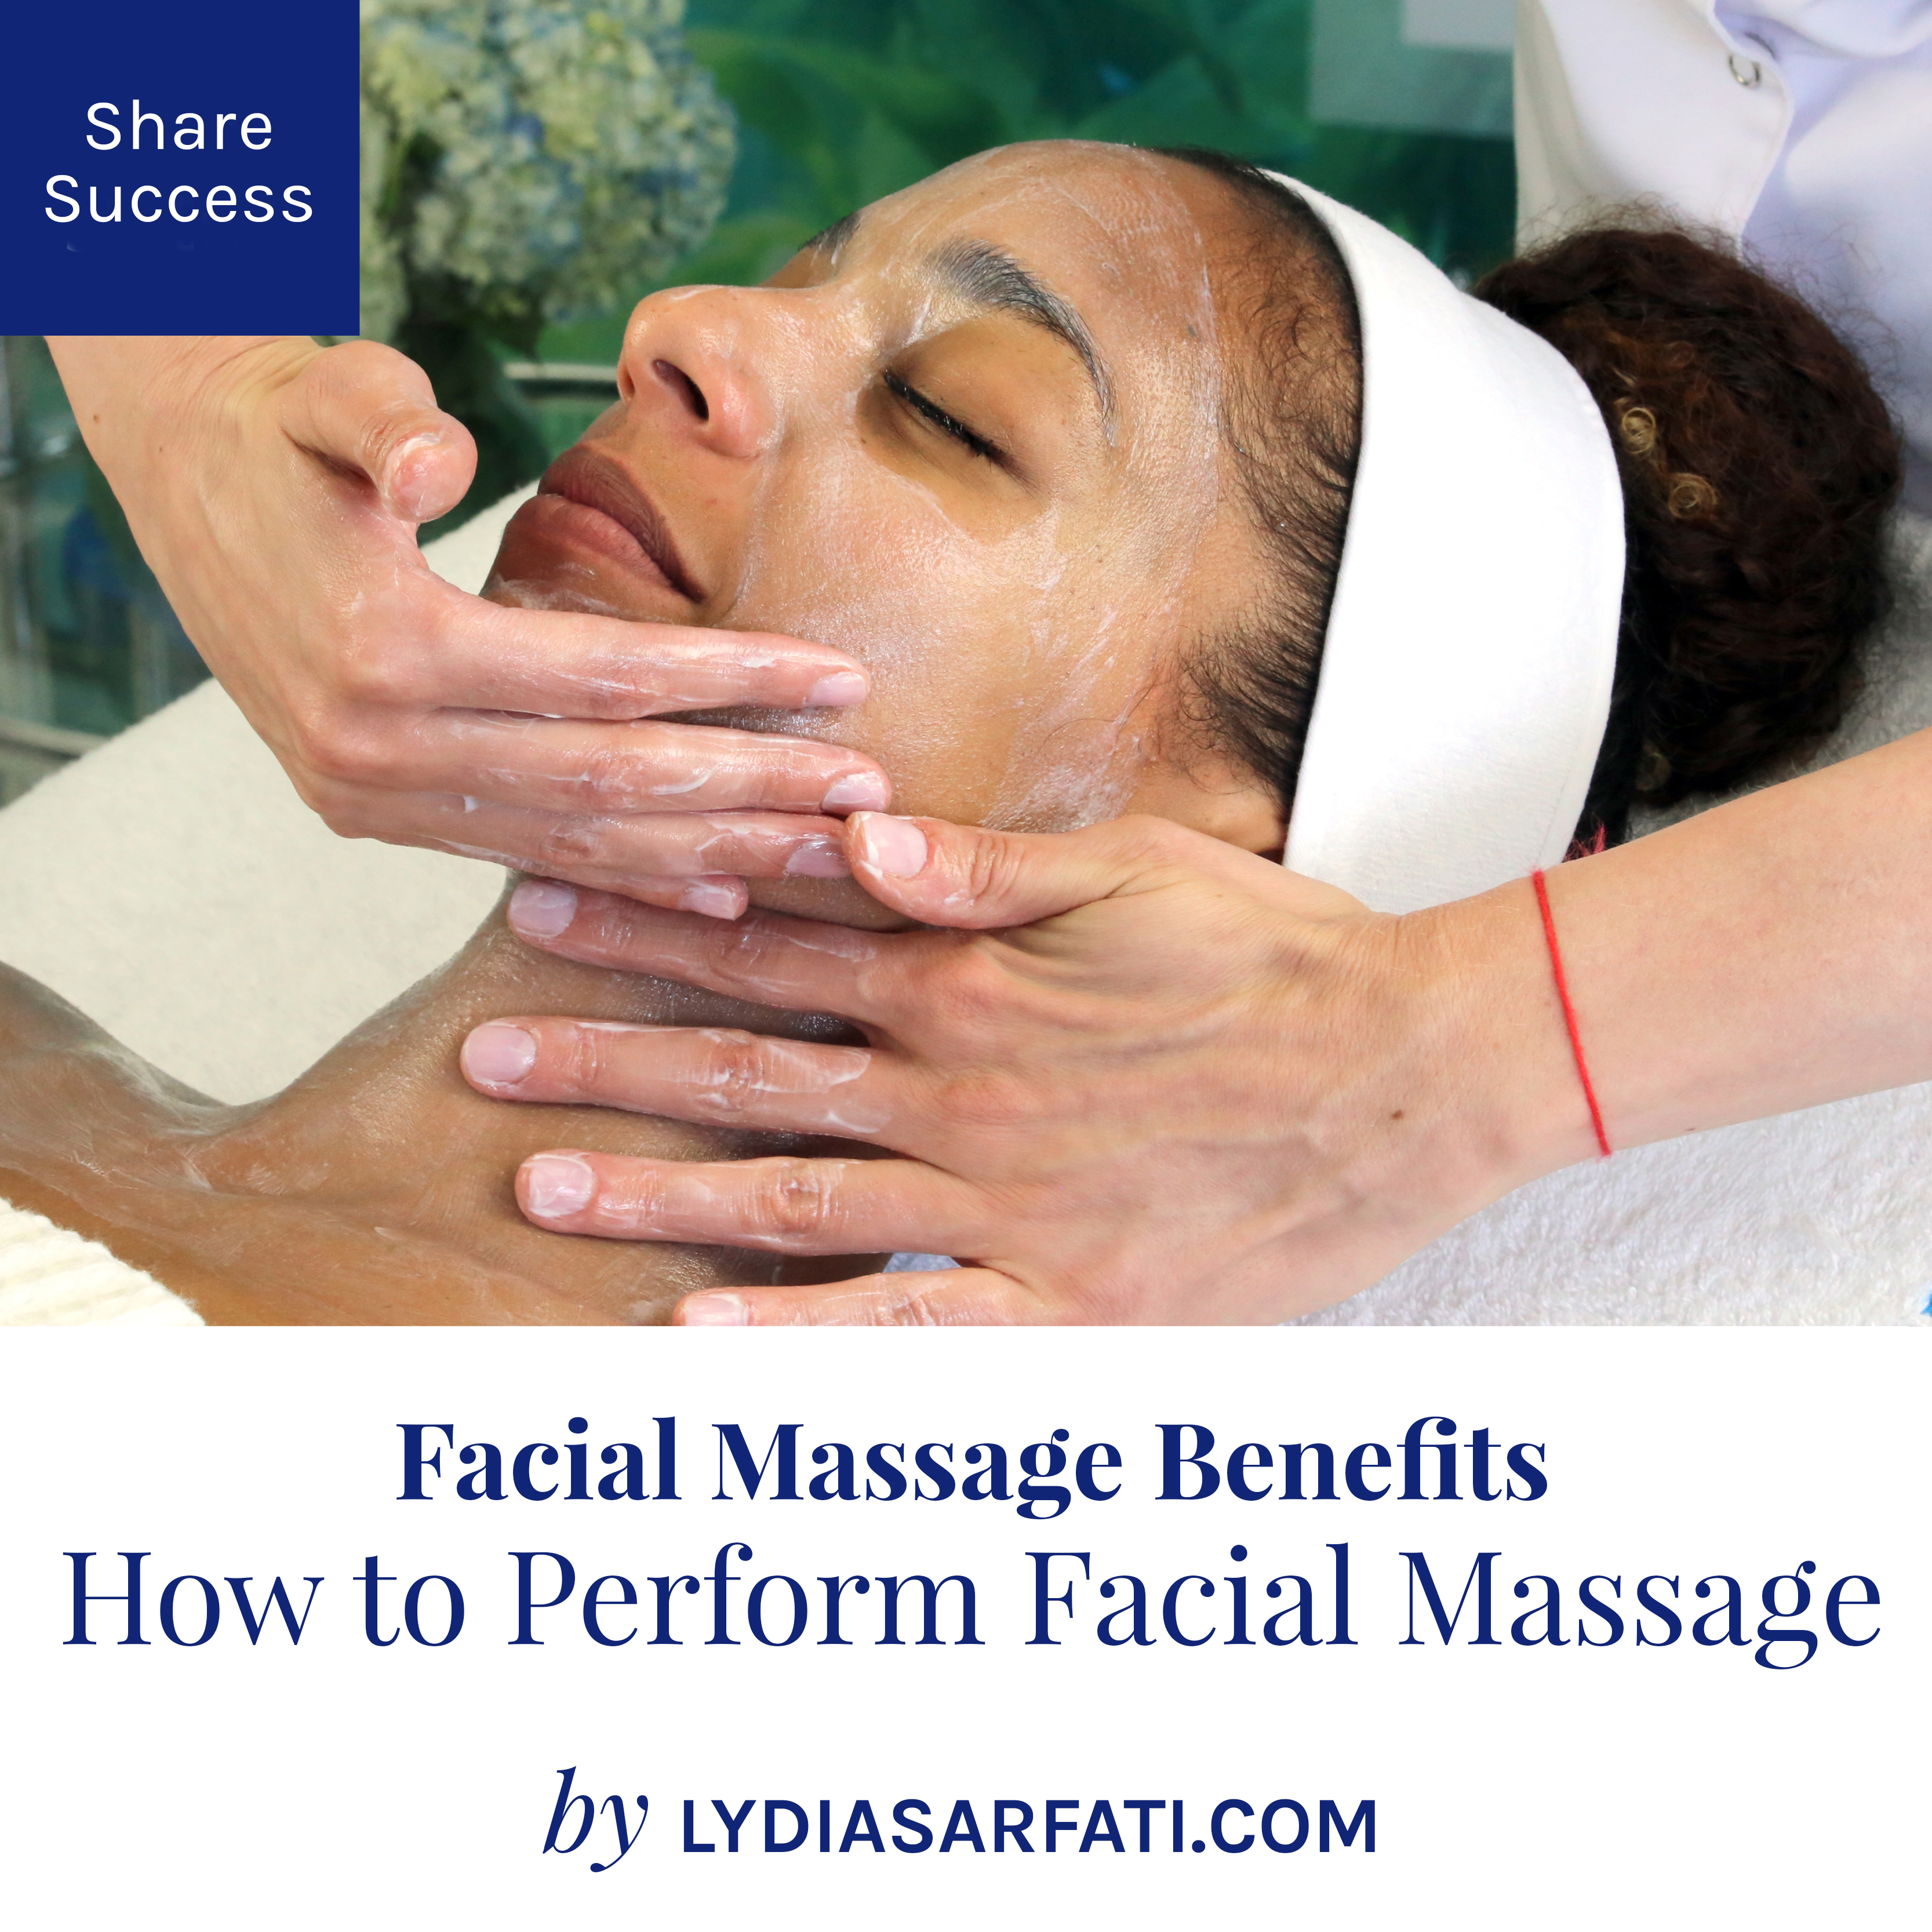 How to perform facial massage facial massage benefits lydia when done correctly facial massage helps to provide your clients with glowing healthy looking complexions educating yourself and practicing solutioingenieria Images